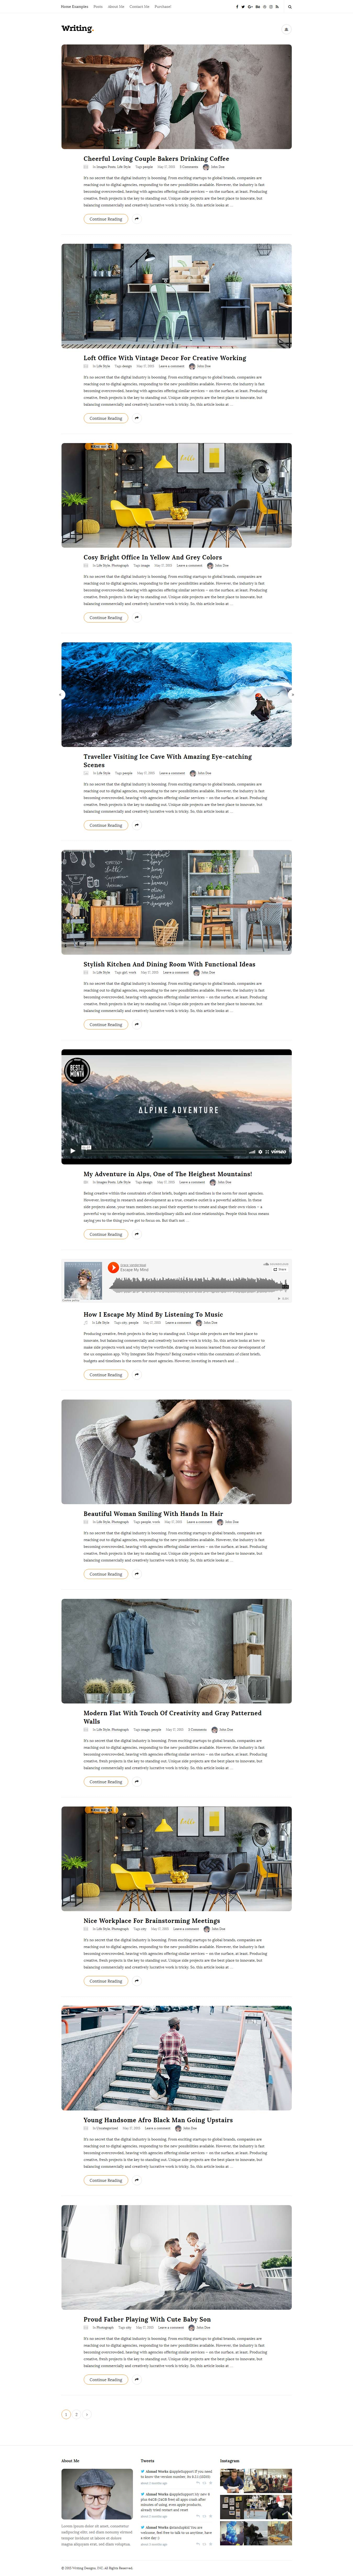 writing blog best premium responsive wordpress theme - 25+ Best Responsive WordPress Themes and Templates (Premium Collection)